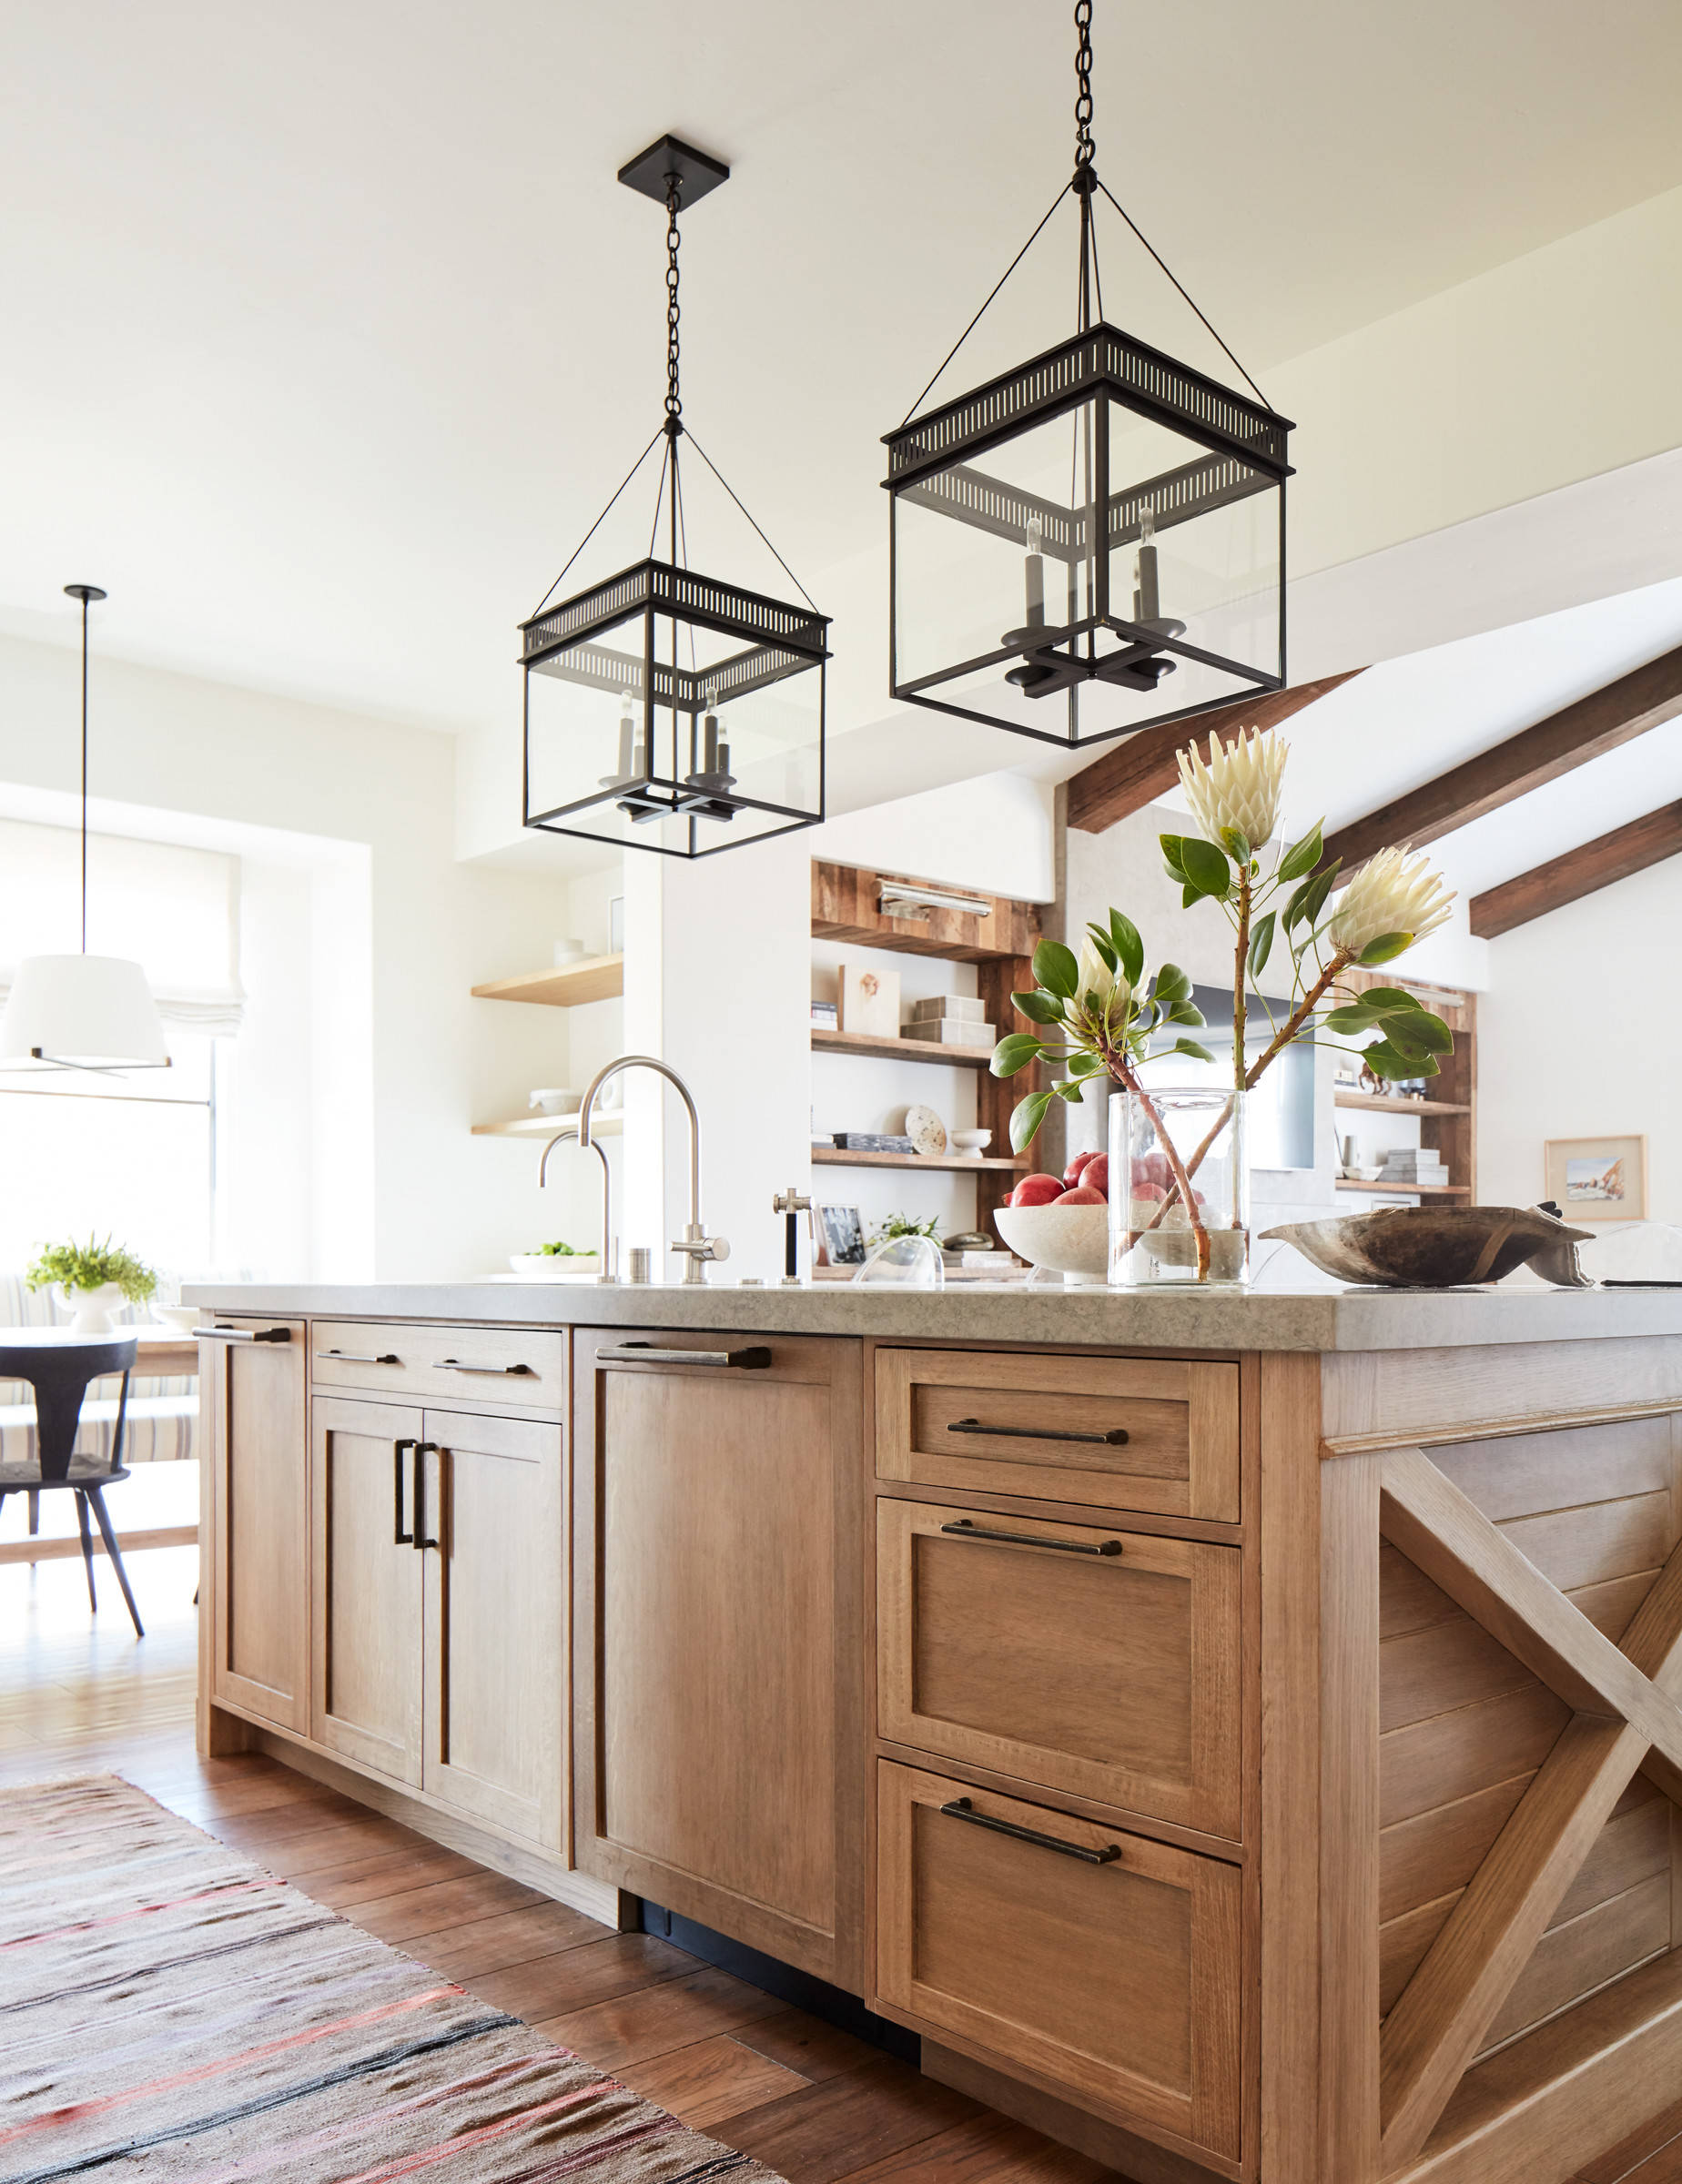 999 Beautiful Open Concept Kitchen Pictures Ideas October 2020 Houzz